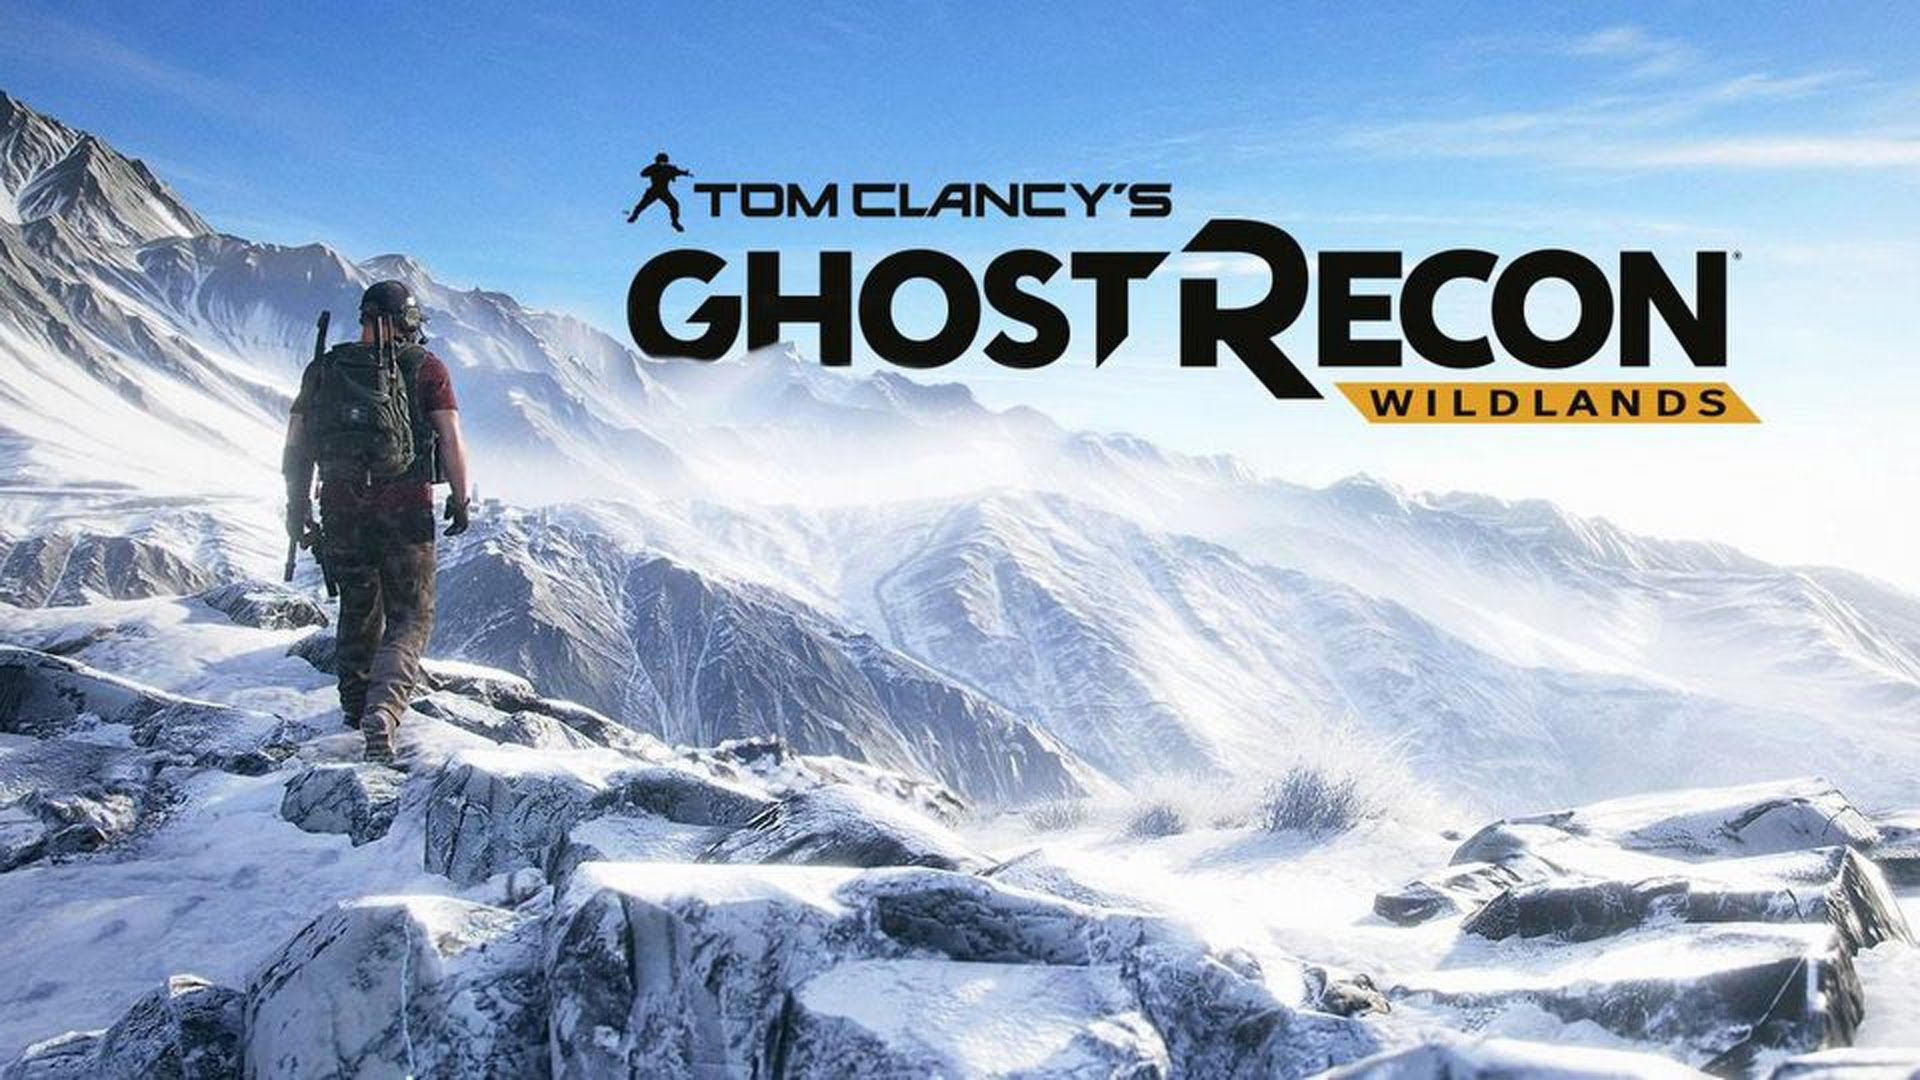 Tom Clancys Ghost Recon Wildlands Hd Wallpapers Backgrounds Idei